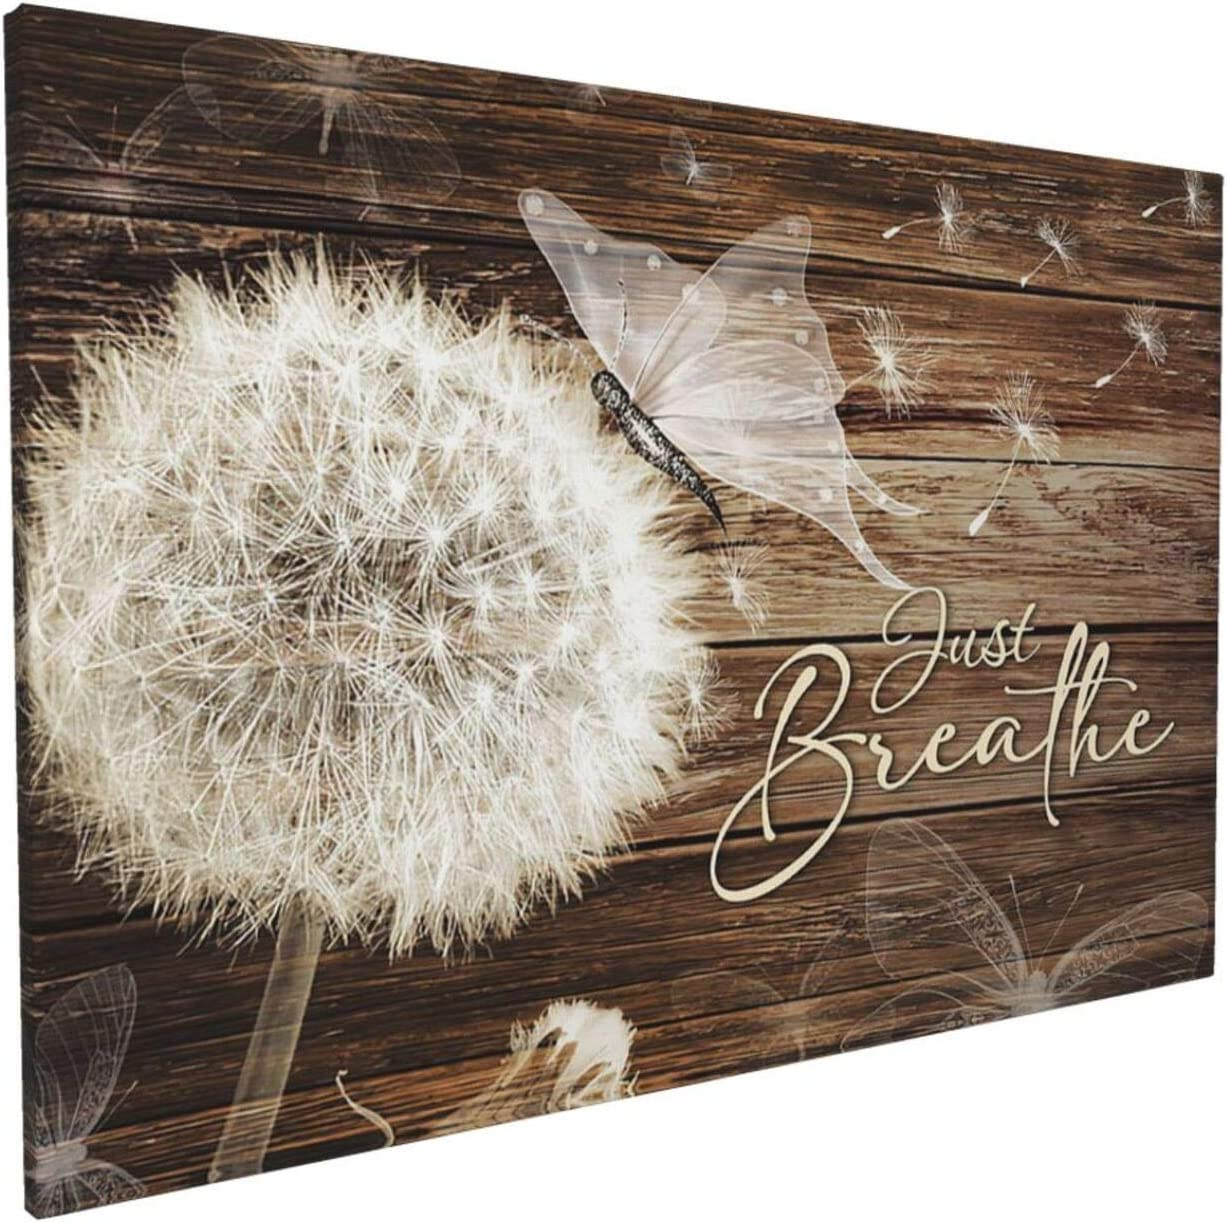 Unkow Just Breathe Wall Art Dandelion Wood Background Canvas White Flower Floral Painting Vintage Picture Giclee Matte Prints Home Decor for Bedroom Living Room Bathroom Ready to Hang 16x24 Inch